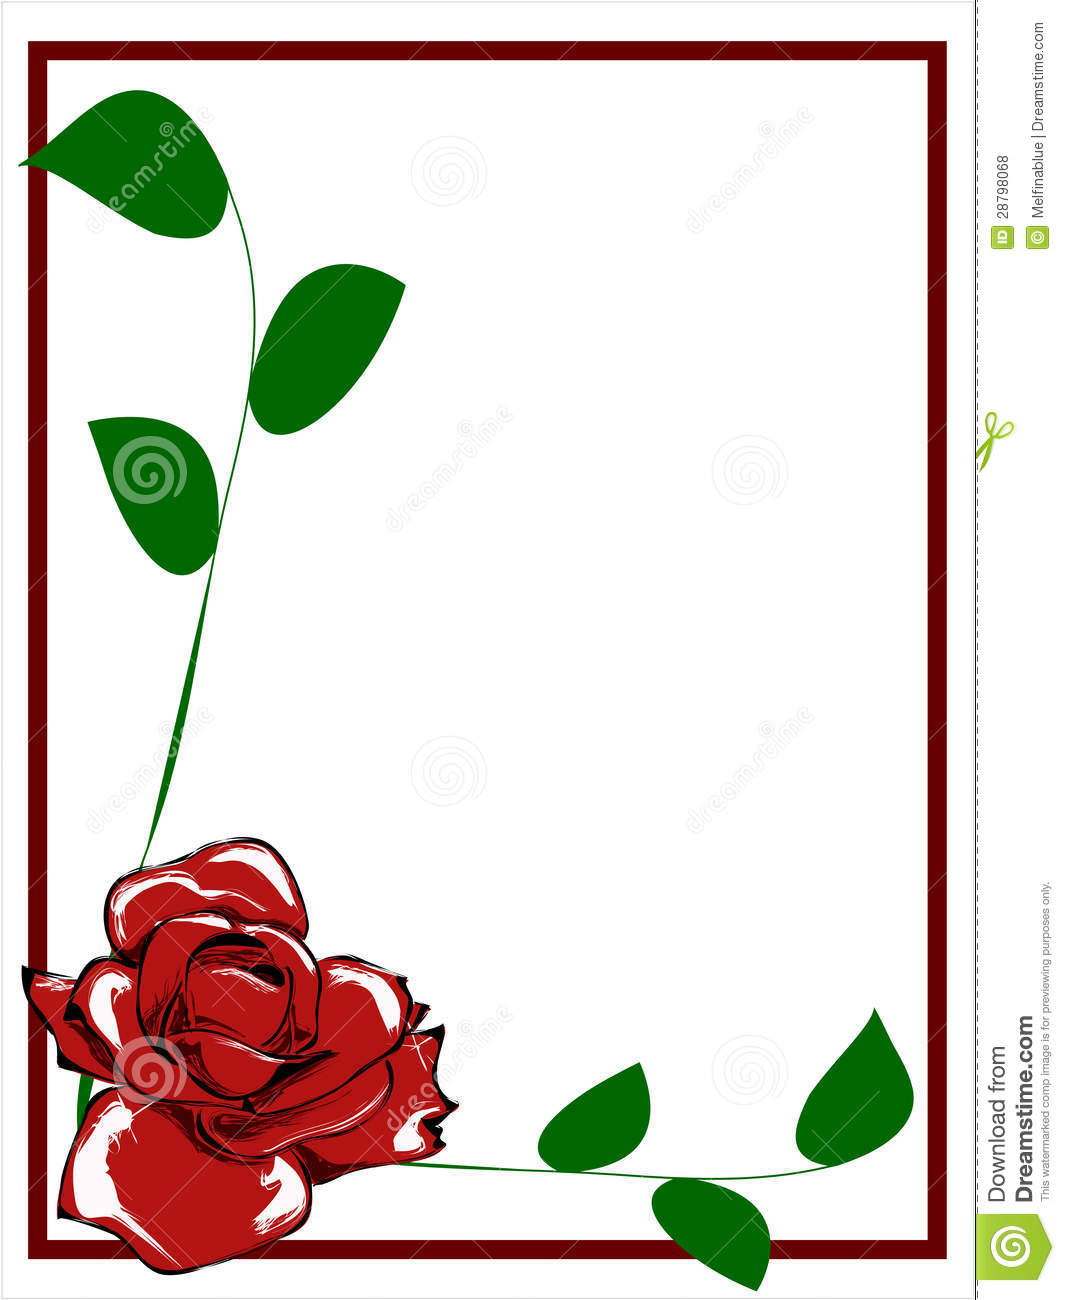 Red Rose clipart rose border #12